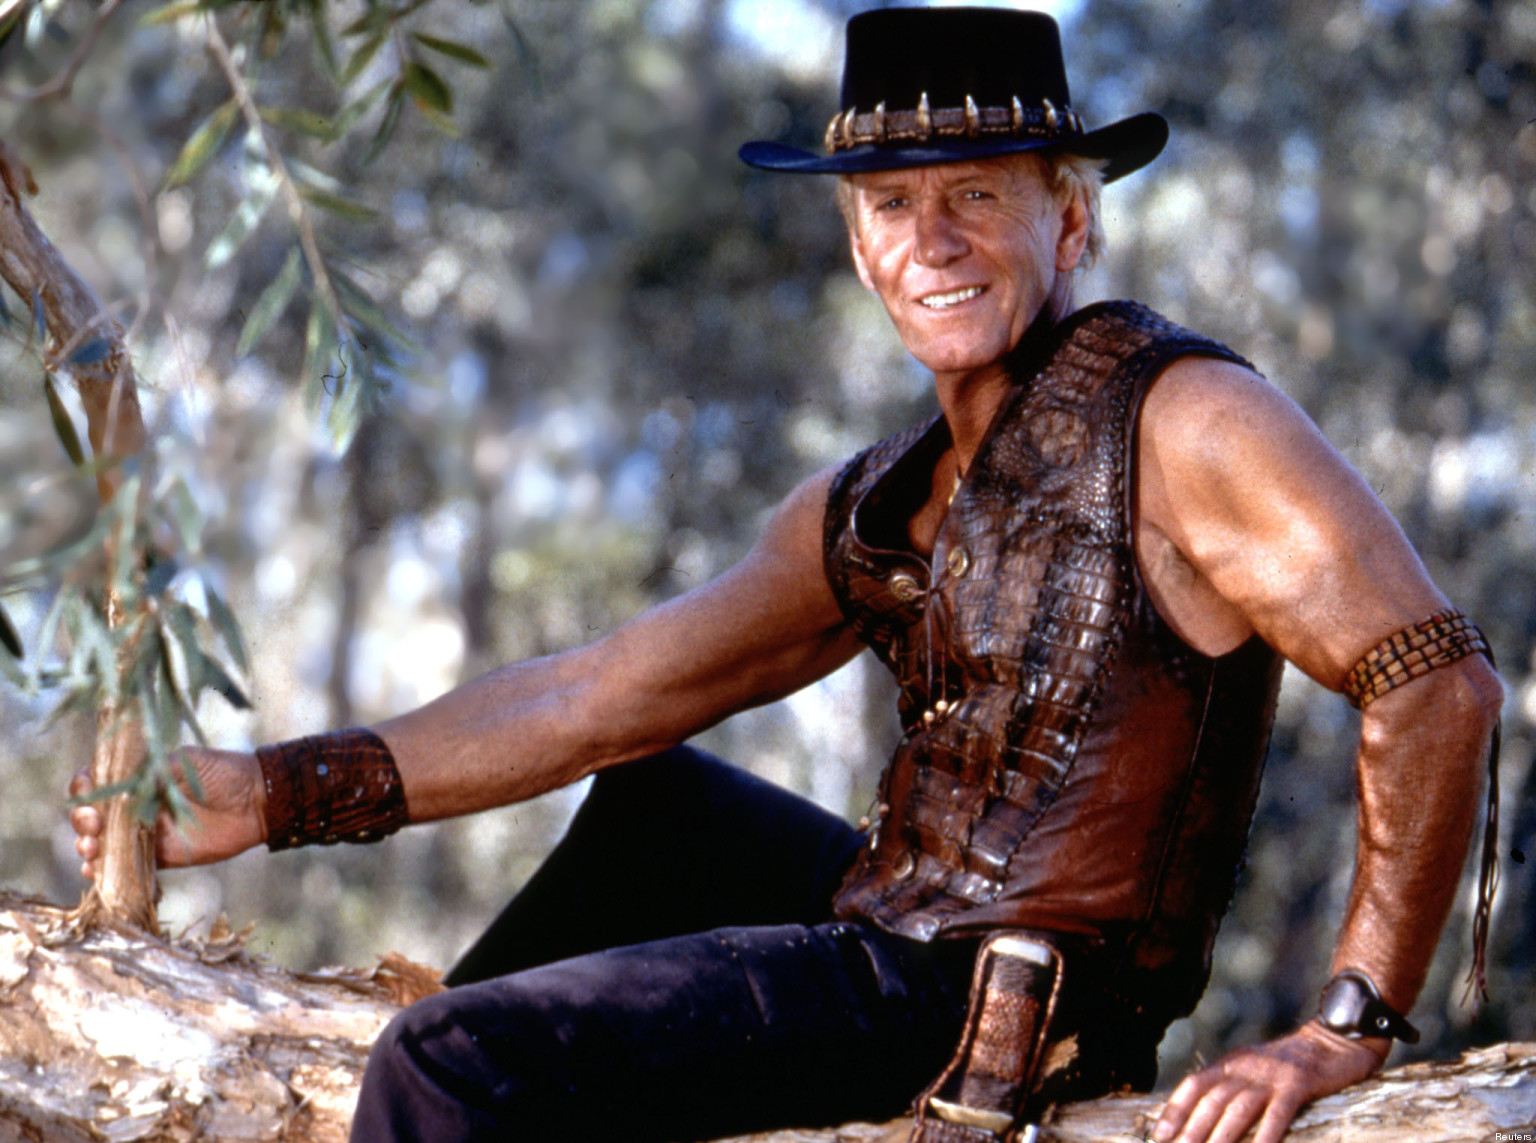 PUBLICITY PHOTO OF ACTOR PAUL HOGAN IN MOVIE CROCODILE DUNDEE.